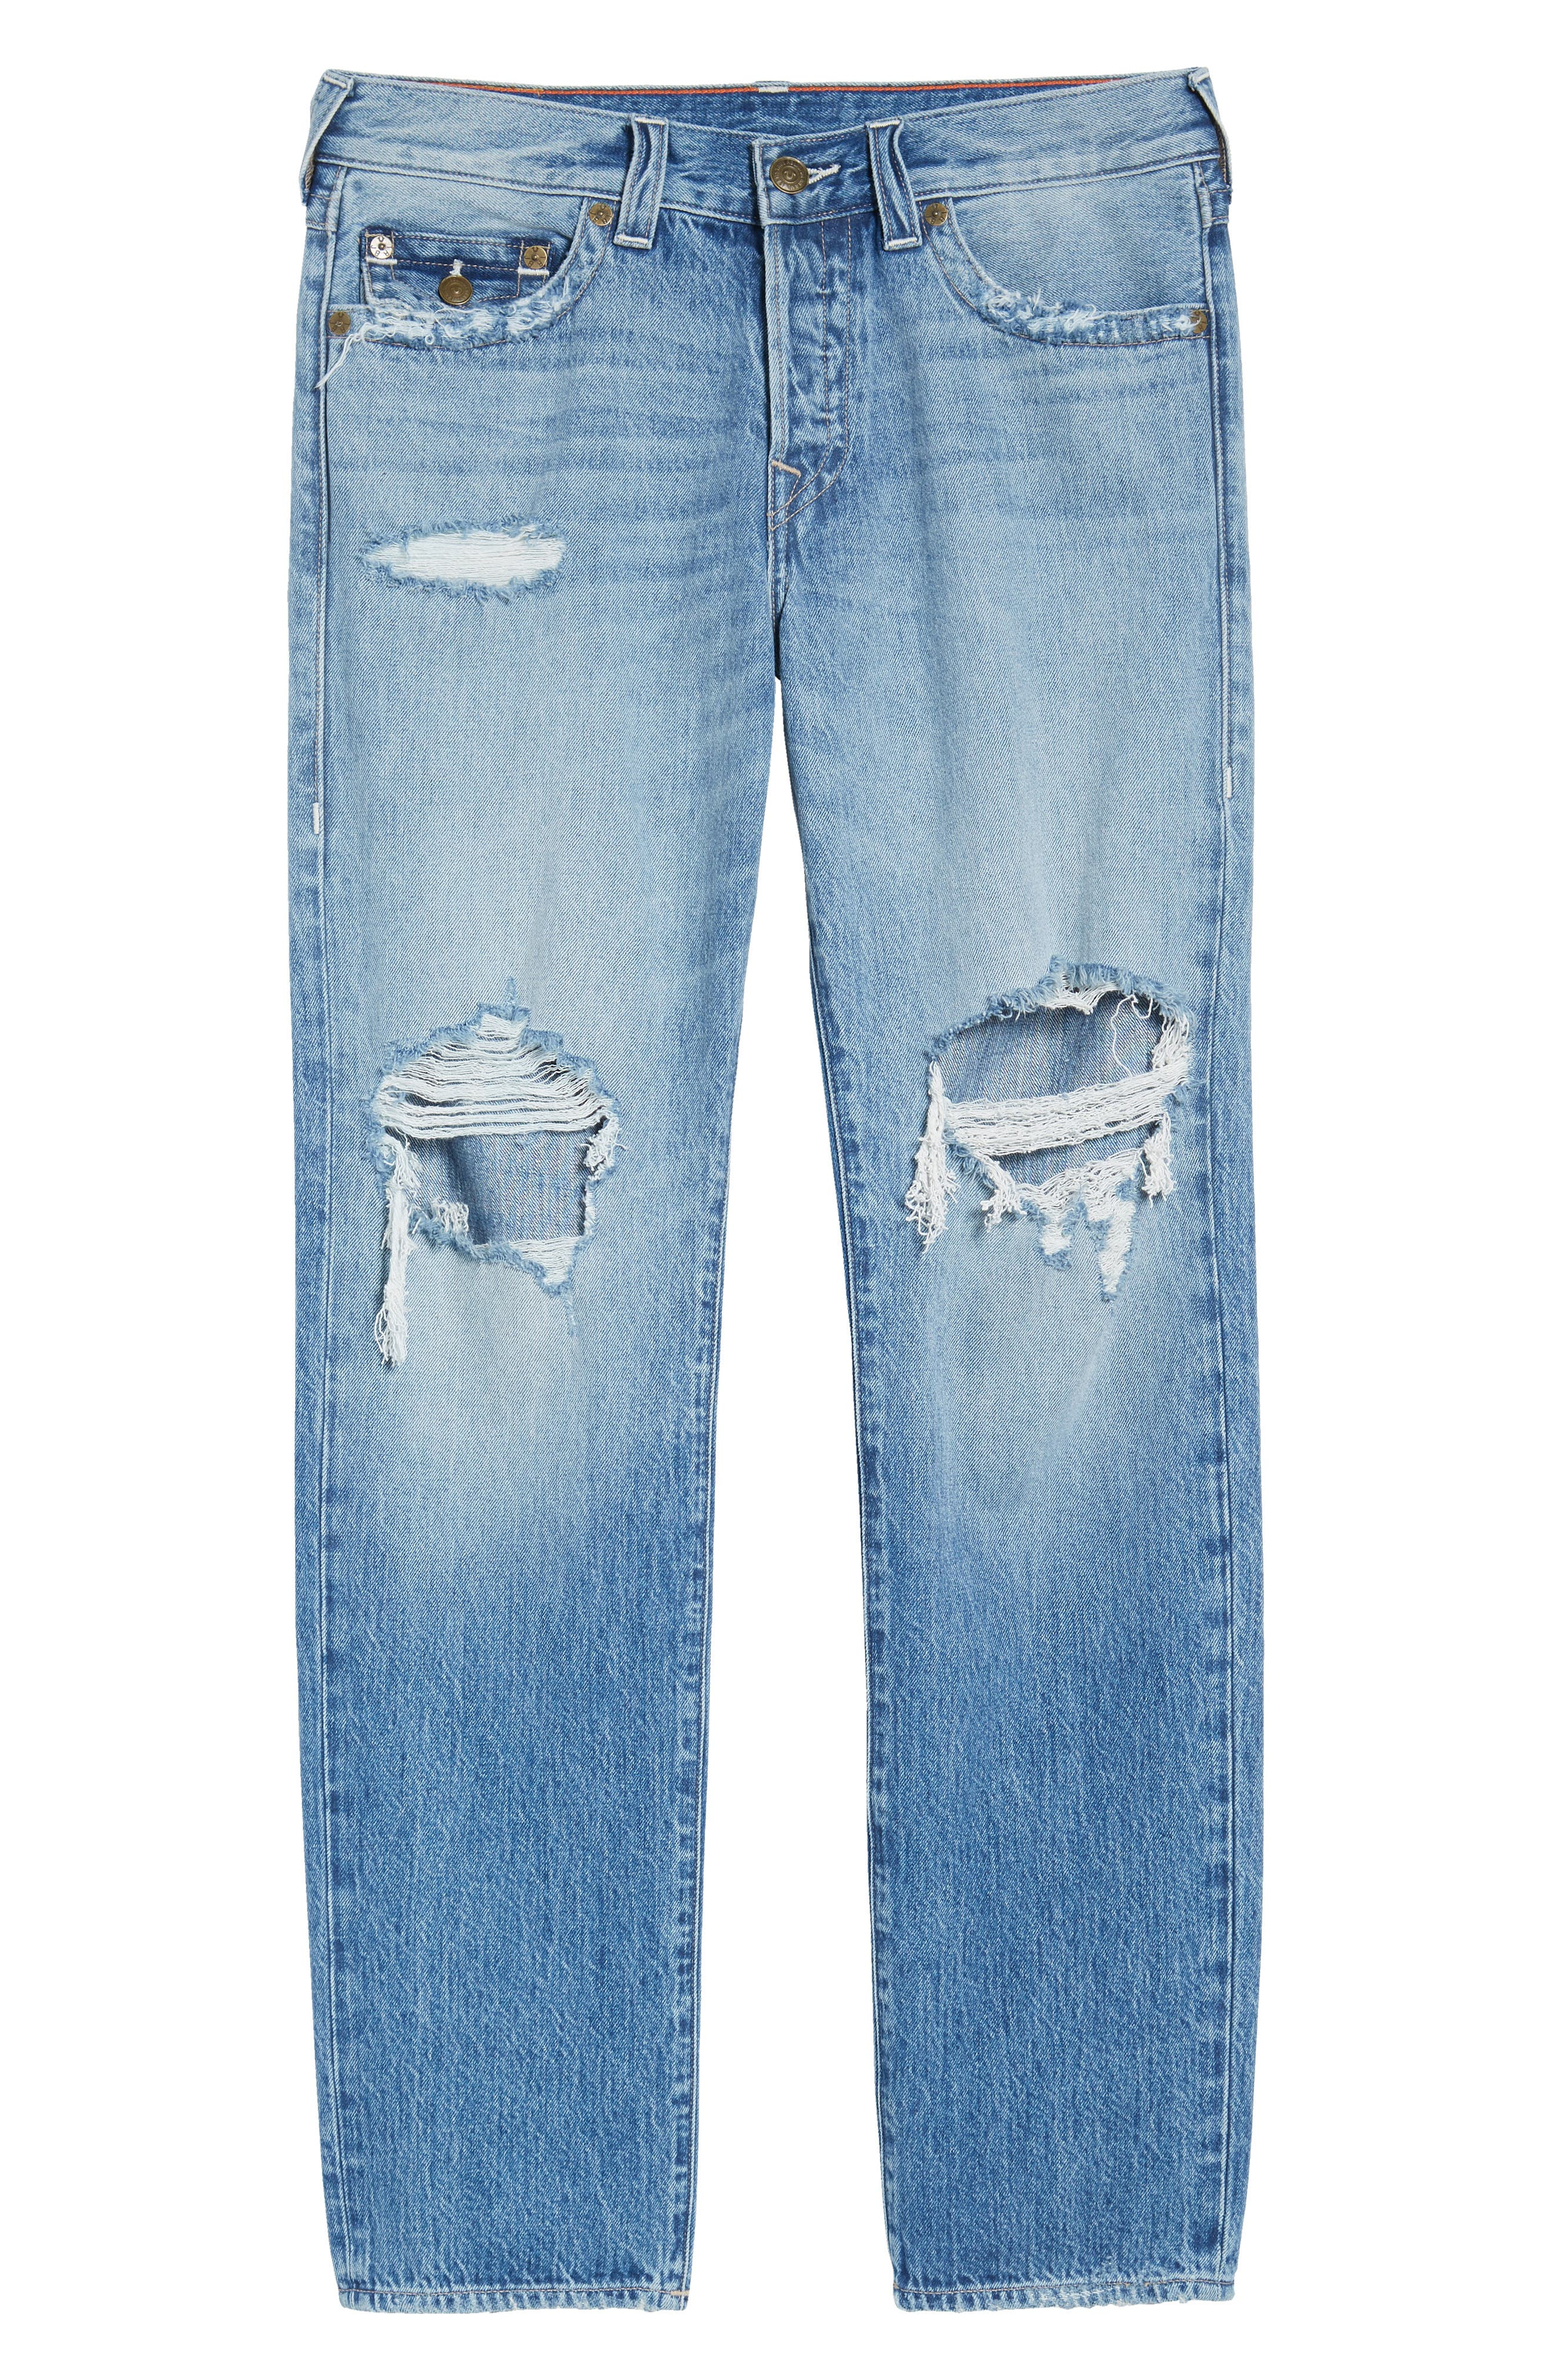 TRUE RELIGION BRAND JEANS,                             Geno Straight Leg Jeans,                             Alternate thumbnail 6, color,                             EQNM DELINGUENT